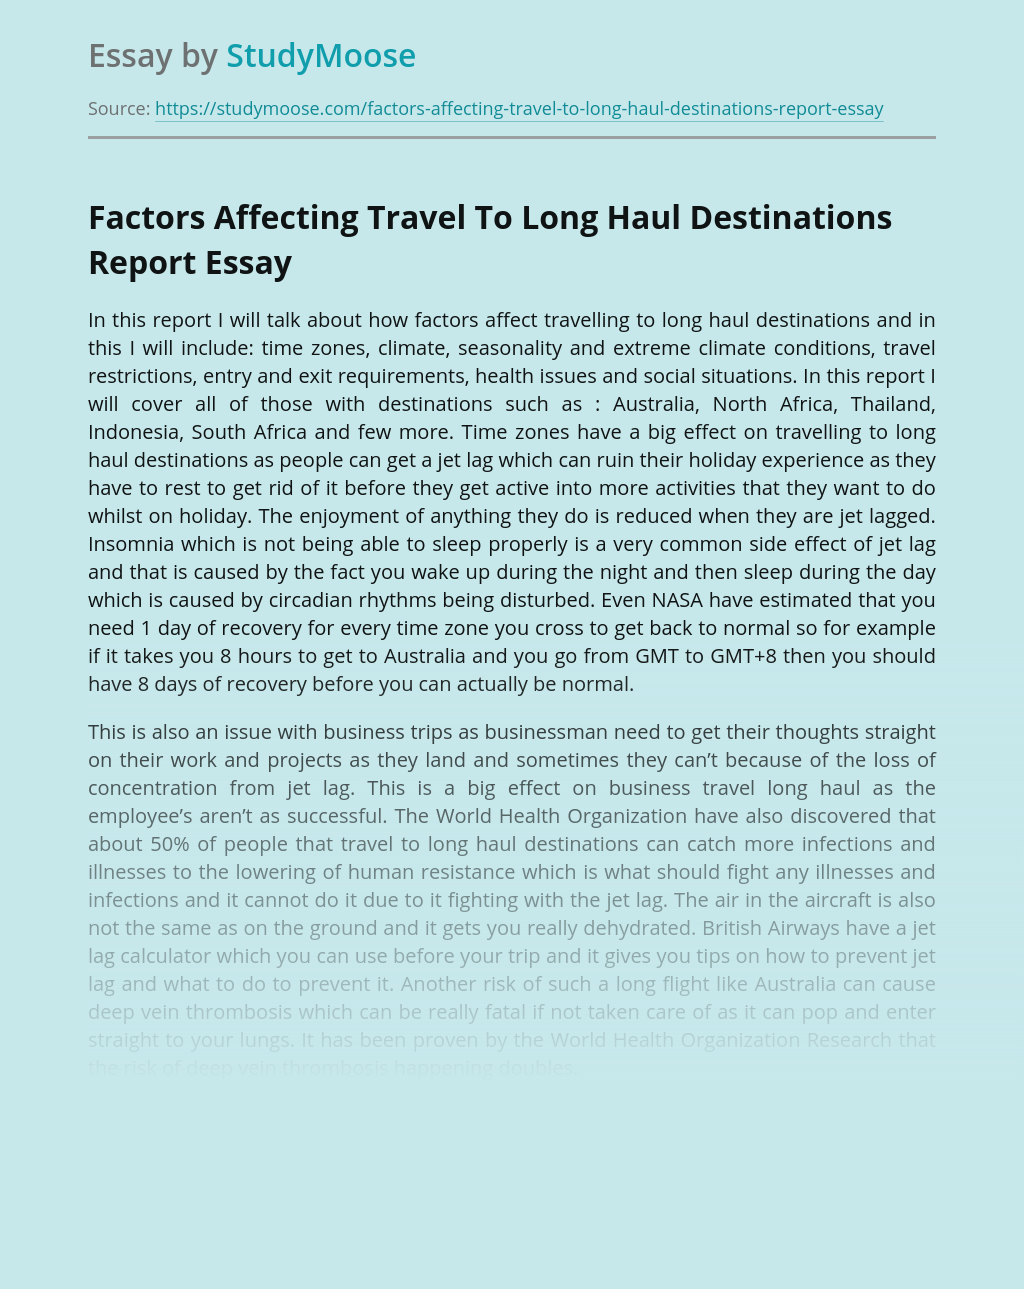 Factors Affecting Traveling To Long Haul Destinations